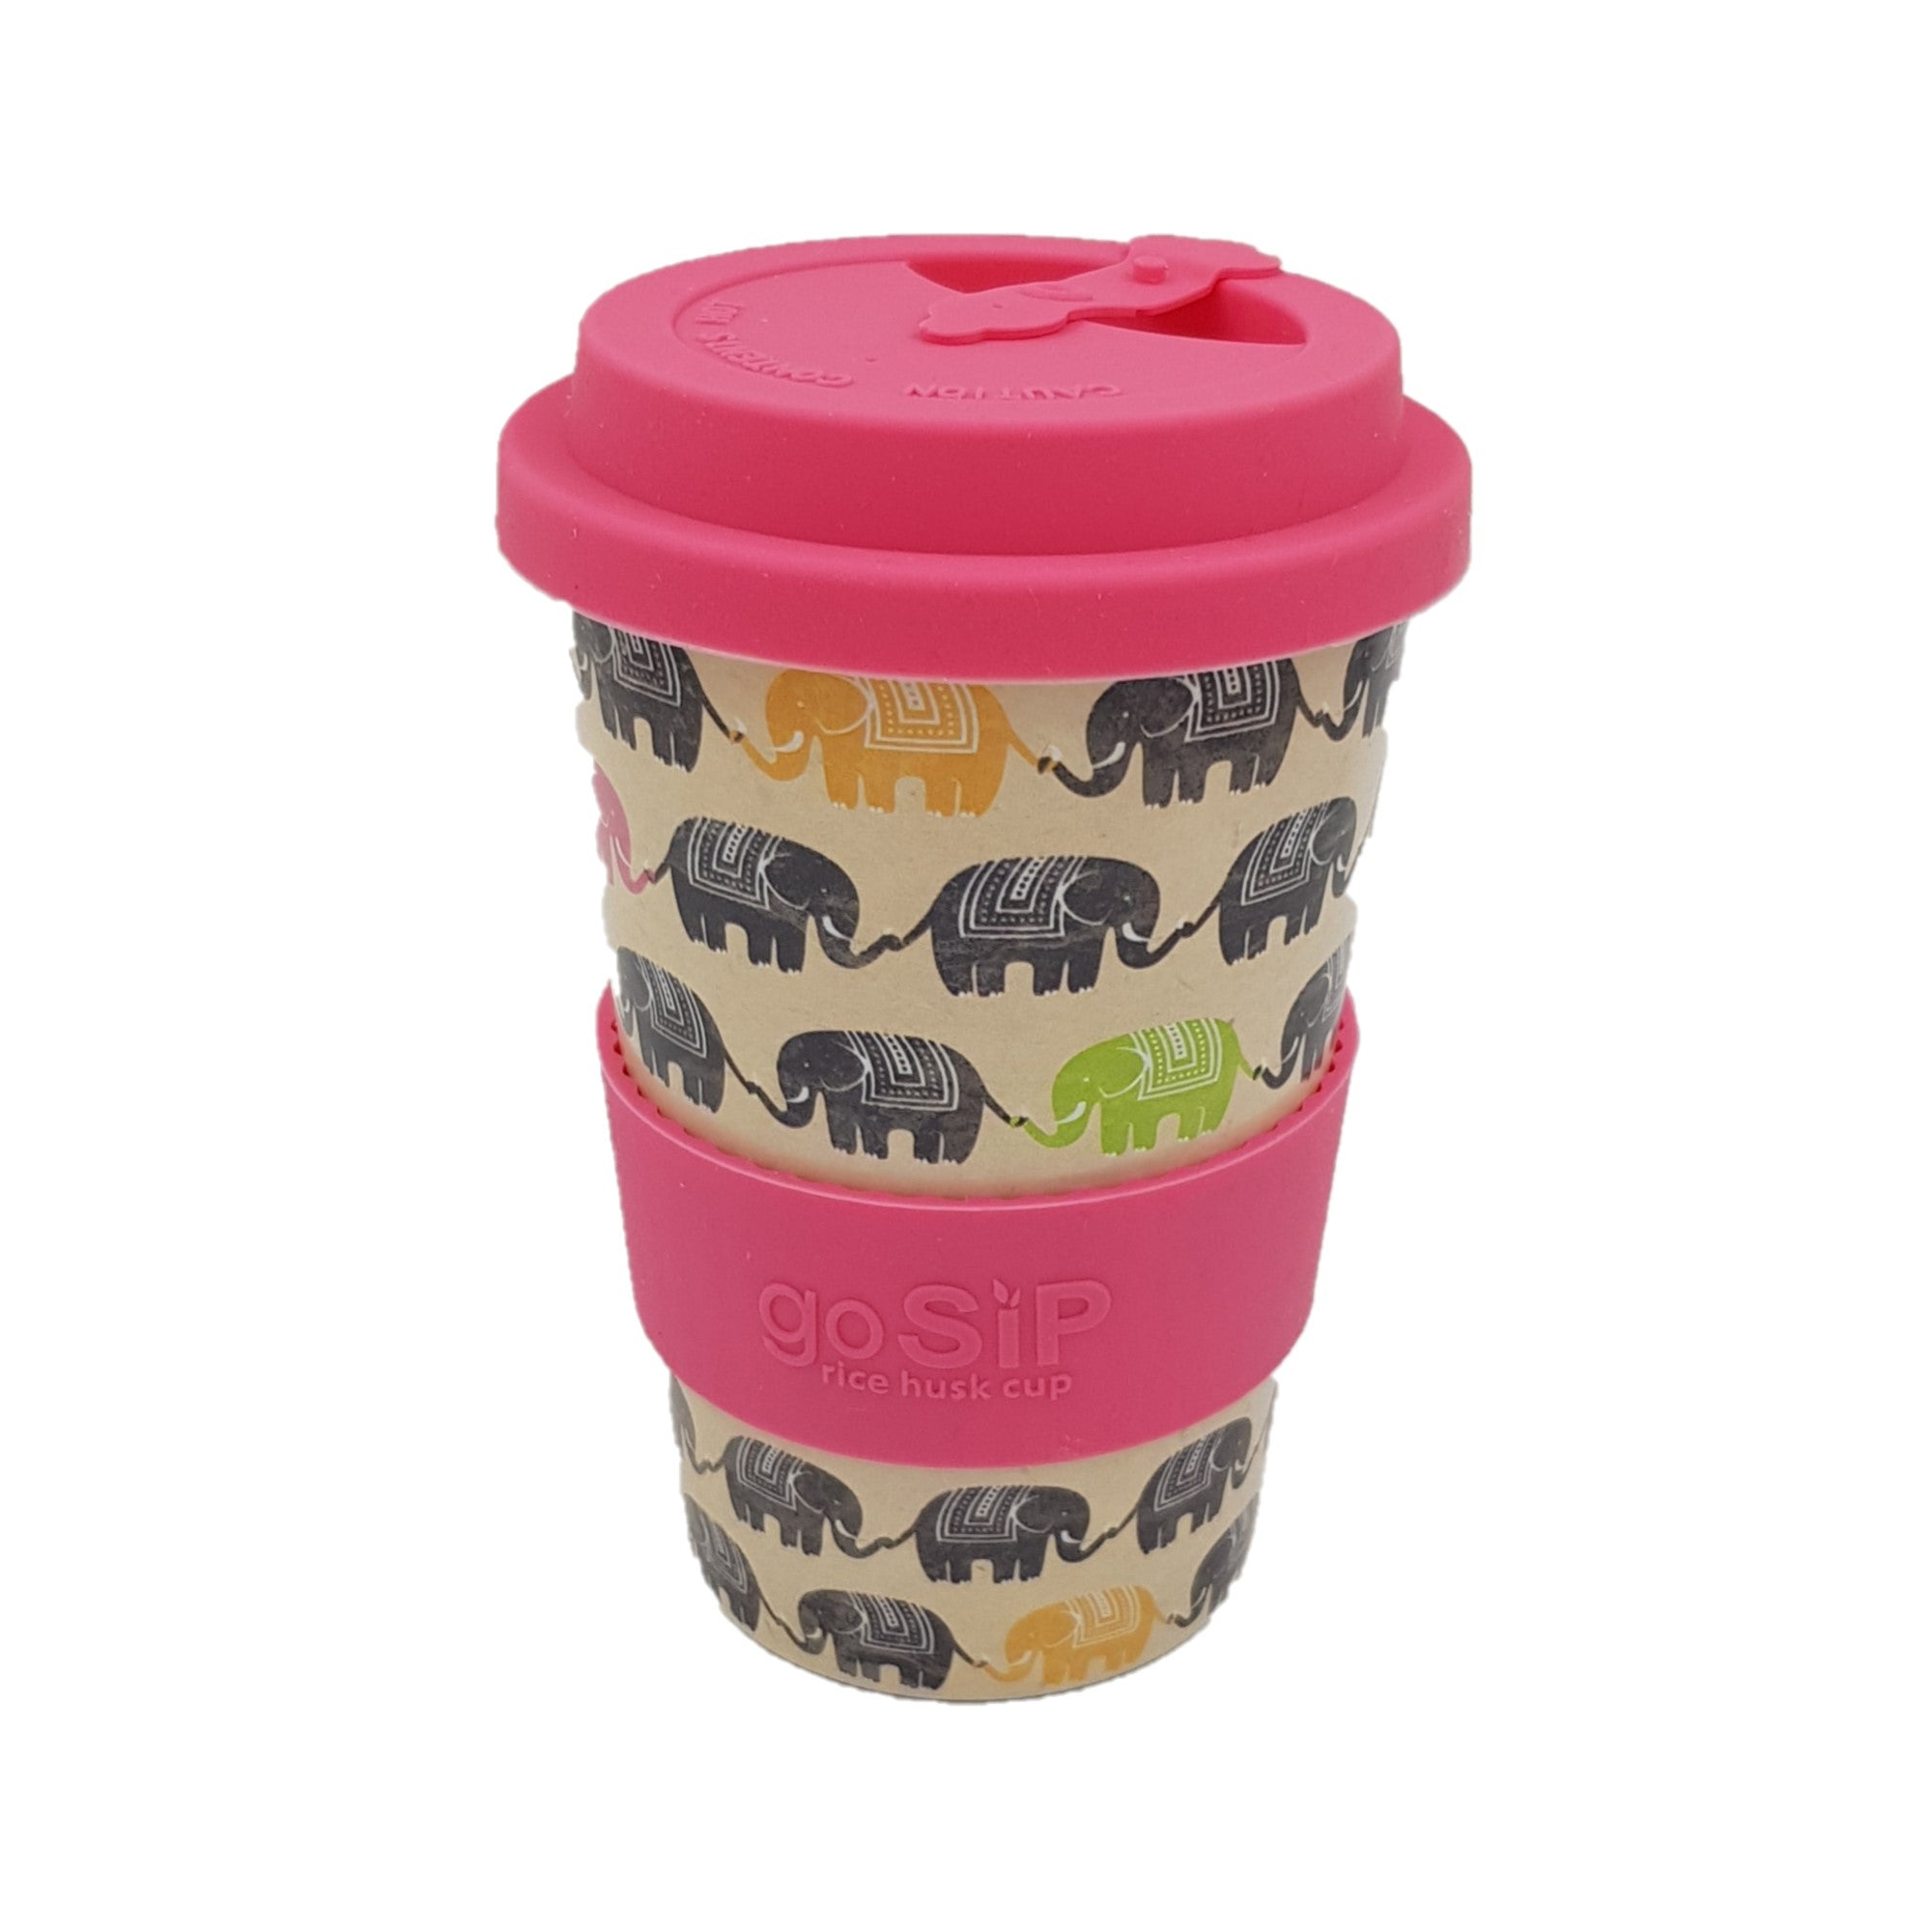 Go Sip Rice Husk Reusable Coffee Cup Elephant Print </div>